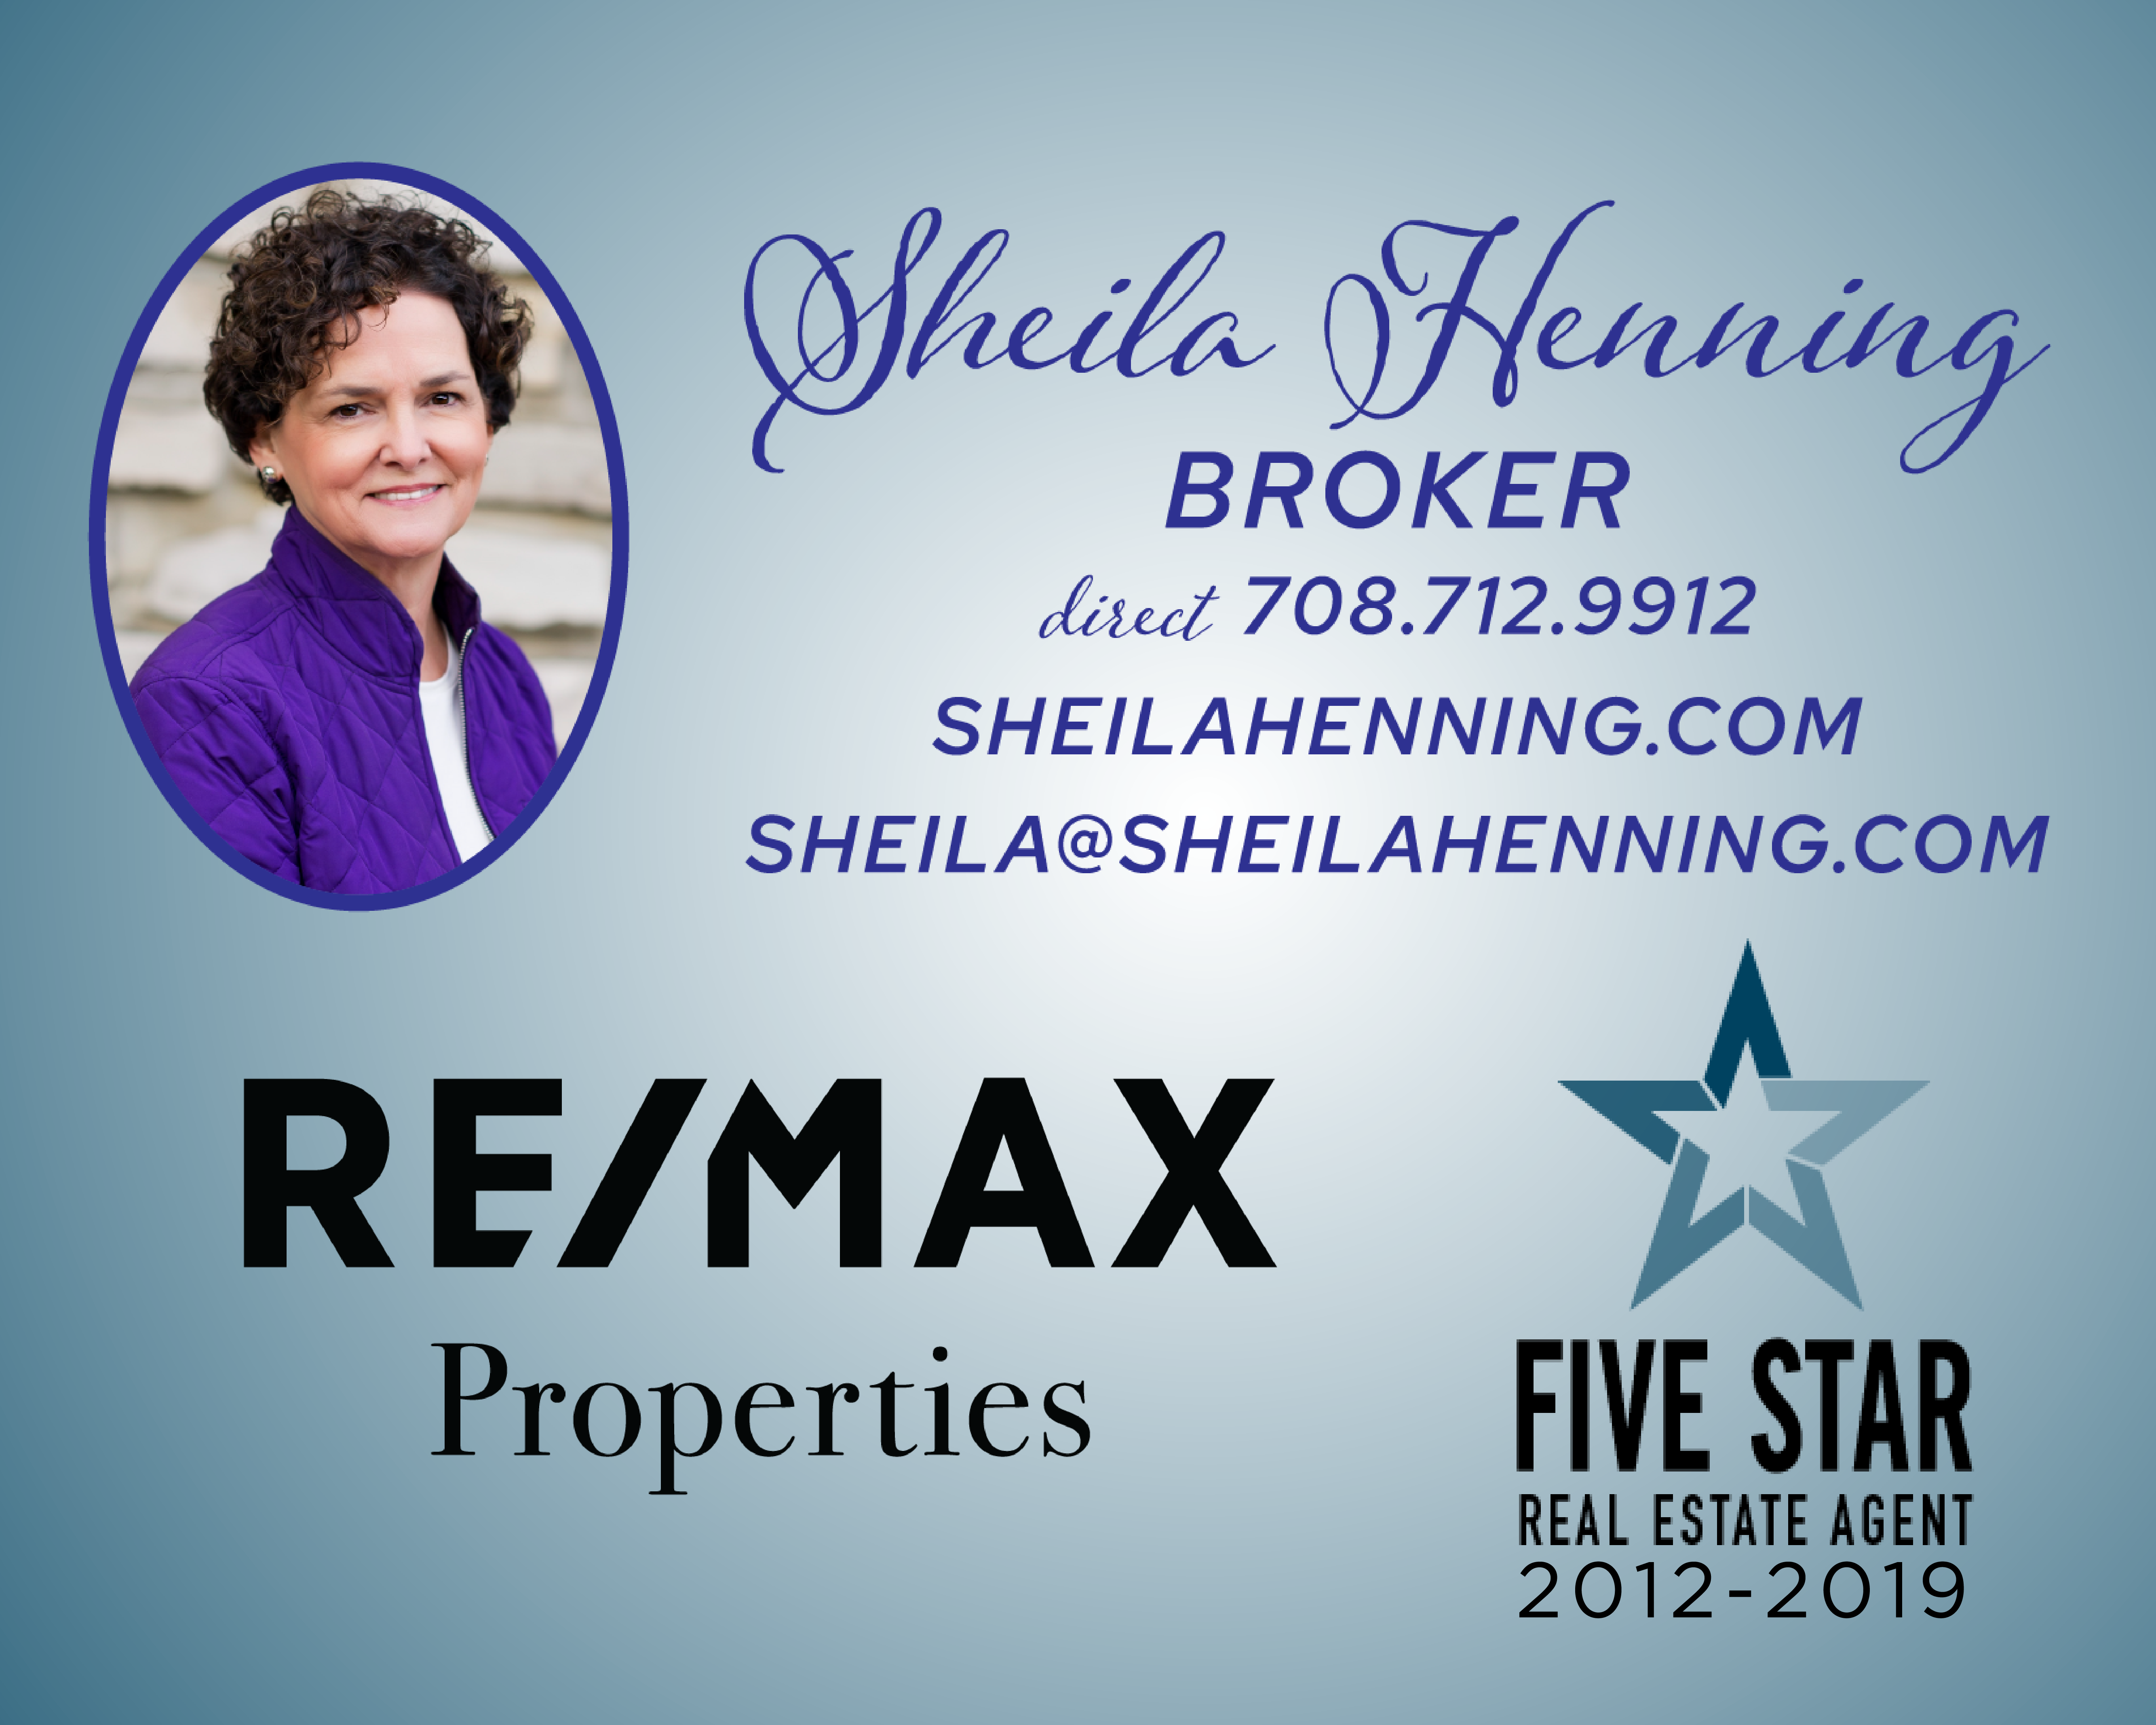 REMAX, RE/MAX Properties, Sheila Henning, Real Estate